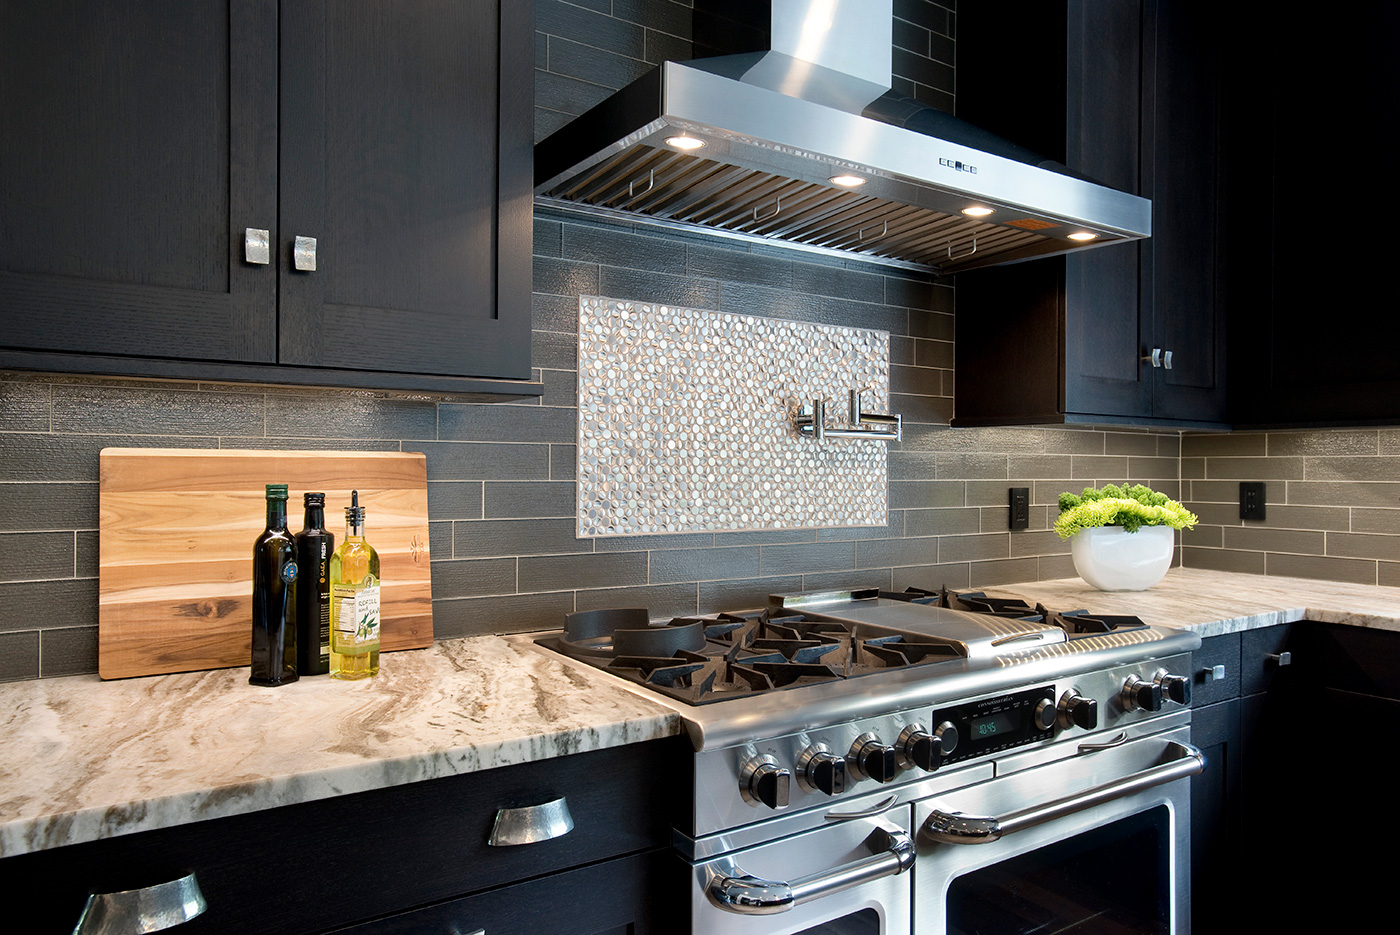 Penny rounds Stainless Steel range accent by Roomscapes Cabinetry and Design Center